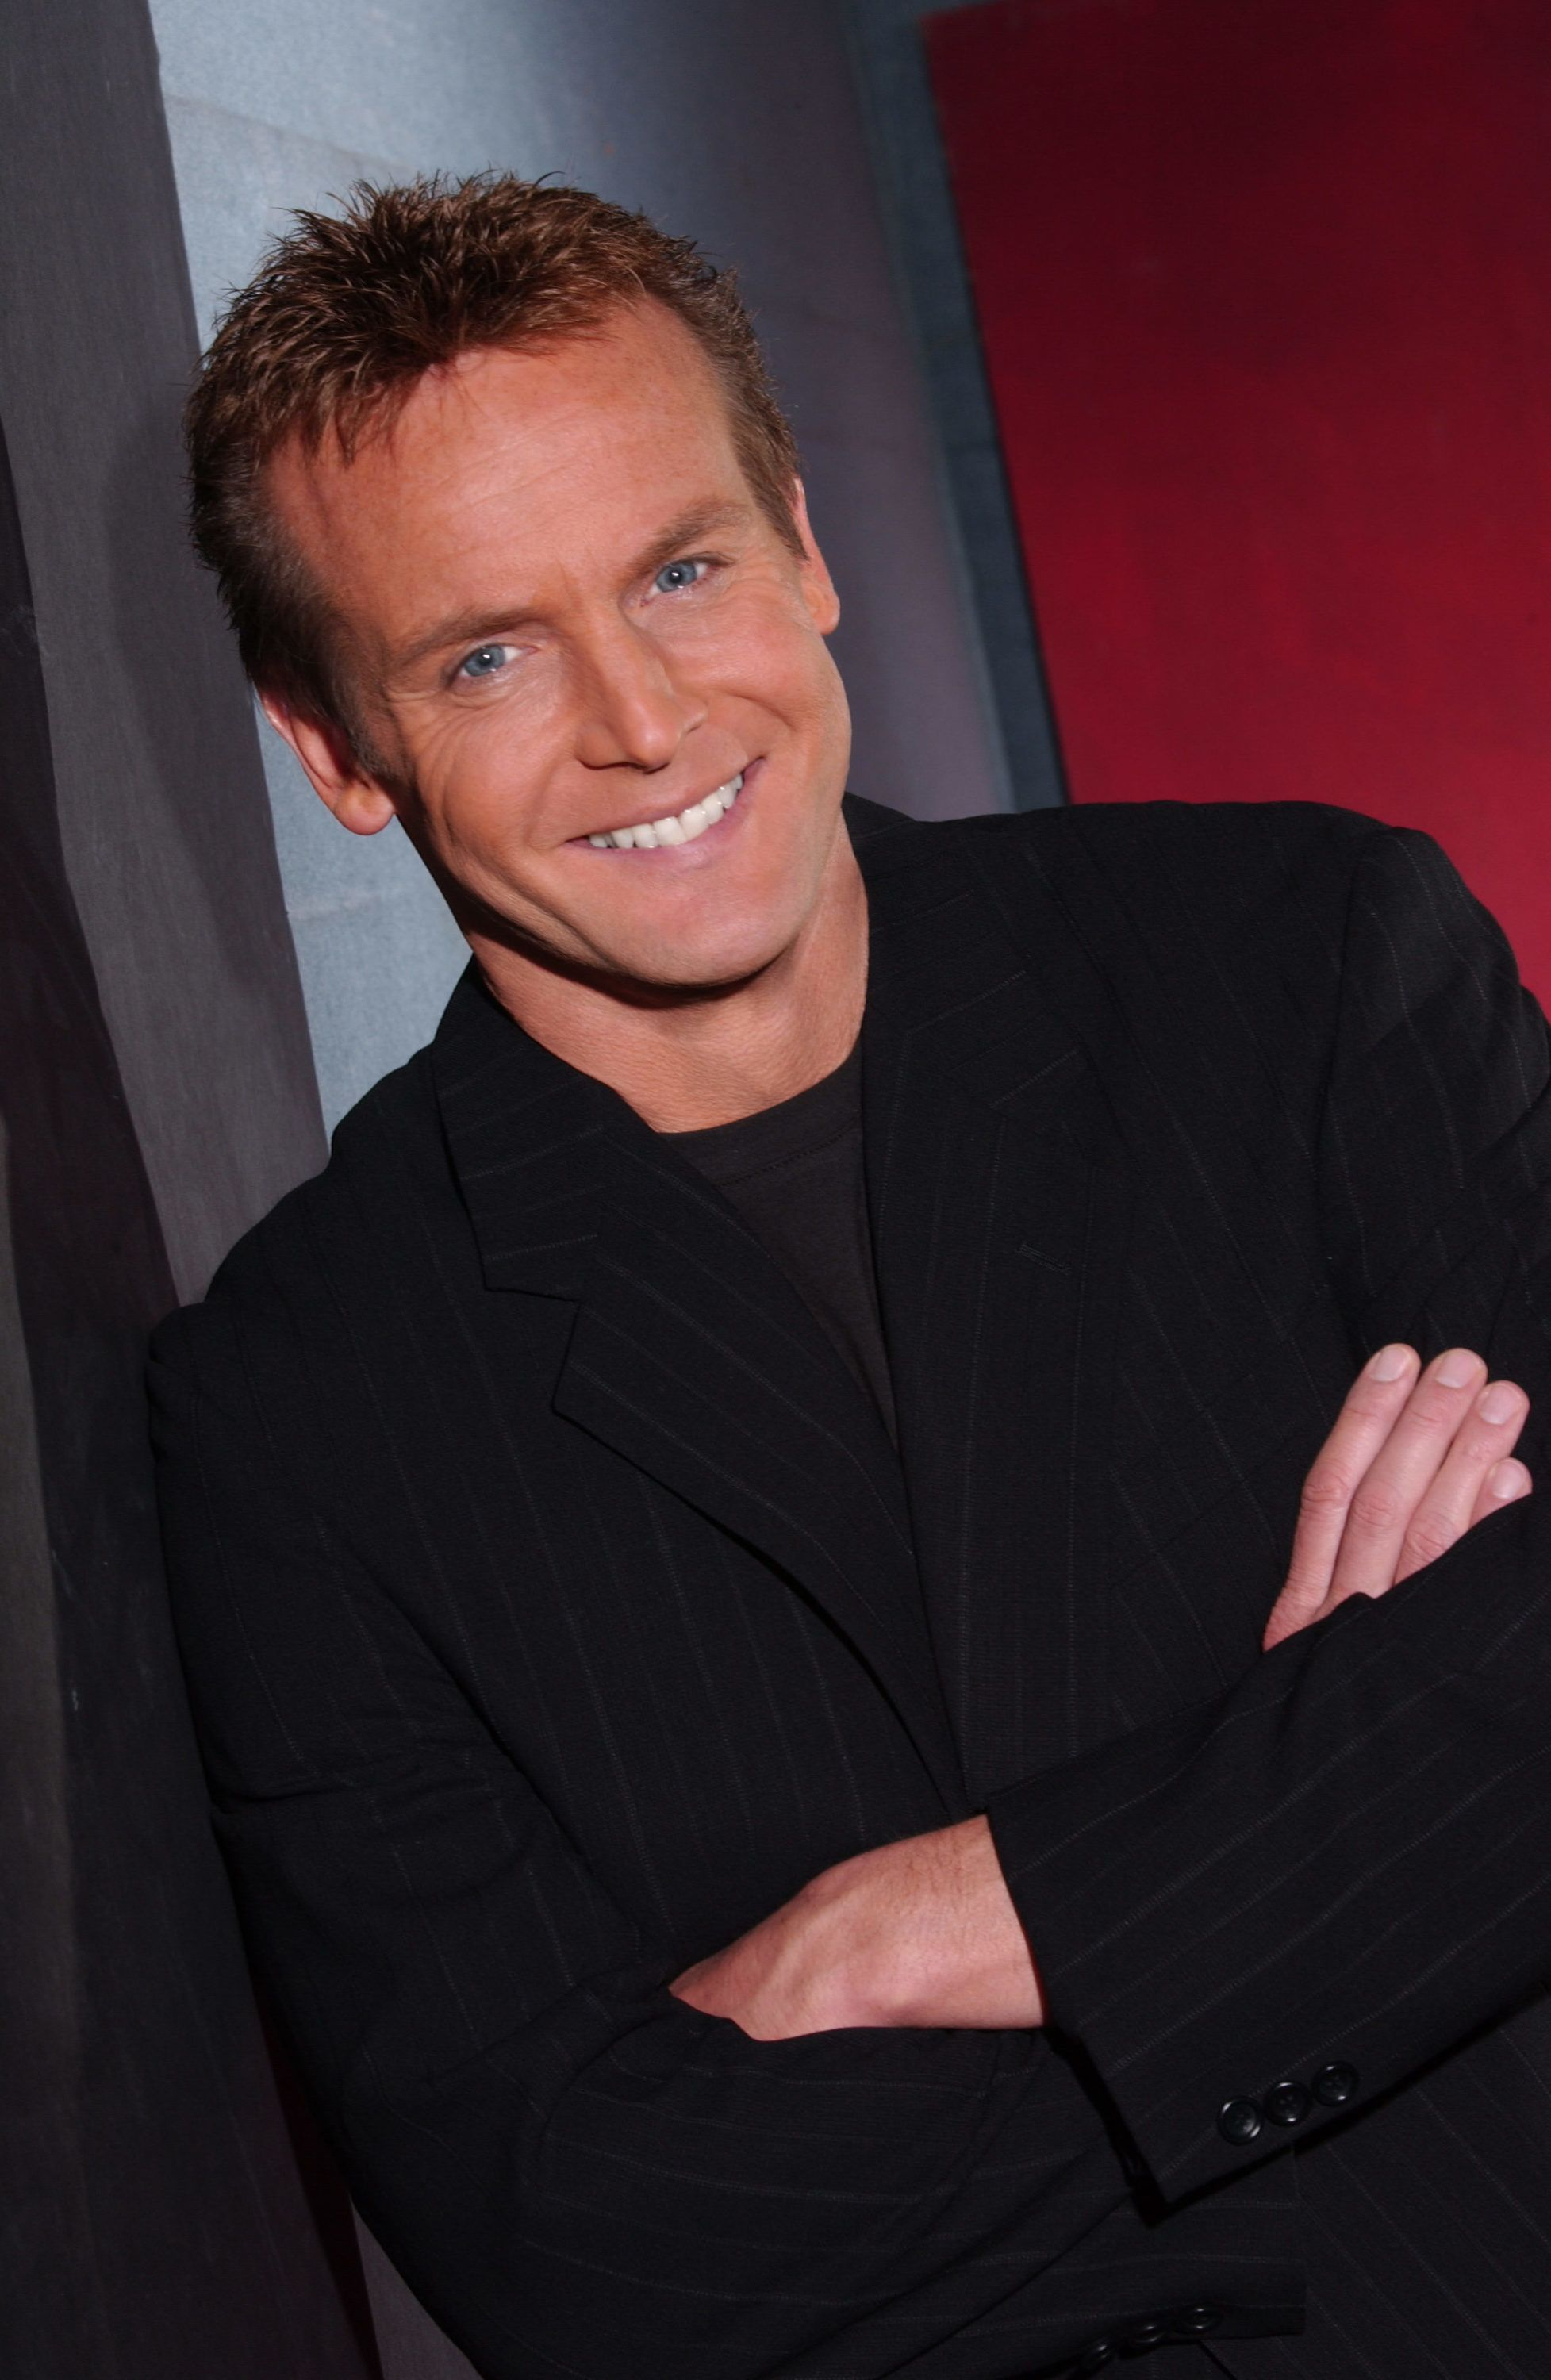 Doug Davidson crossing his arms in a suit